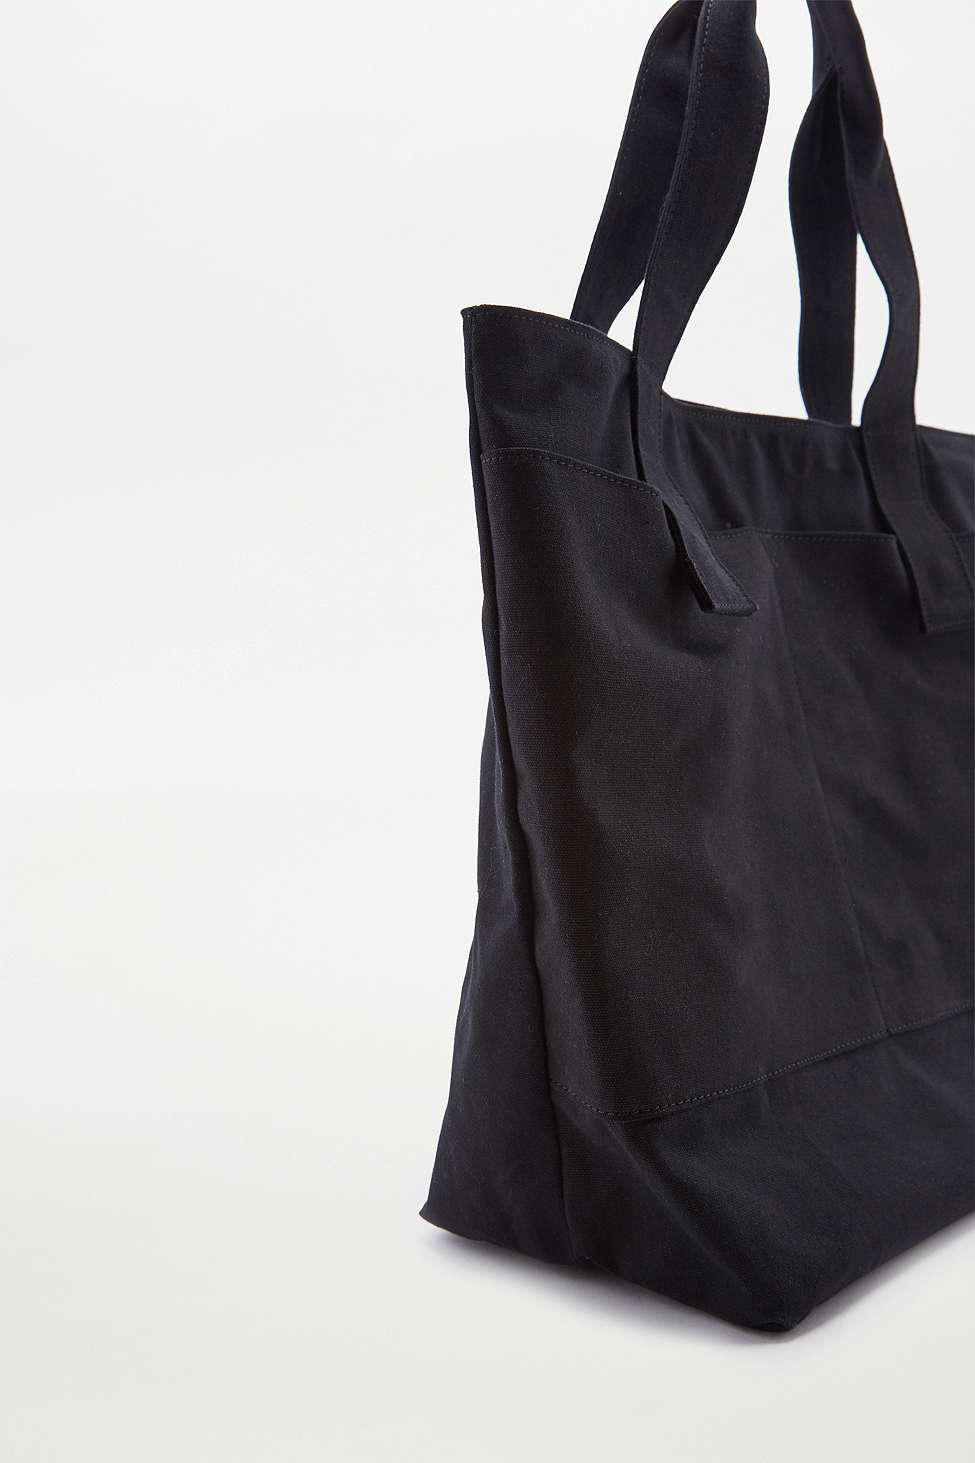 Urban Outfitters Oversized Black Canvas Tote Bag